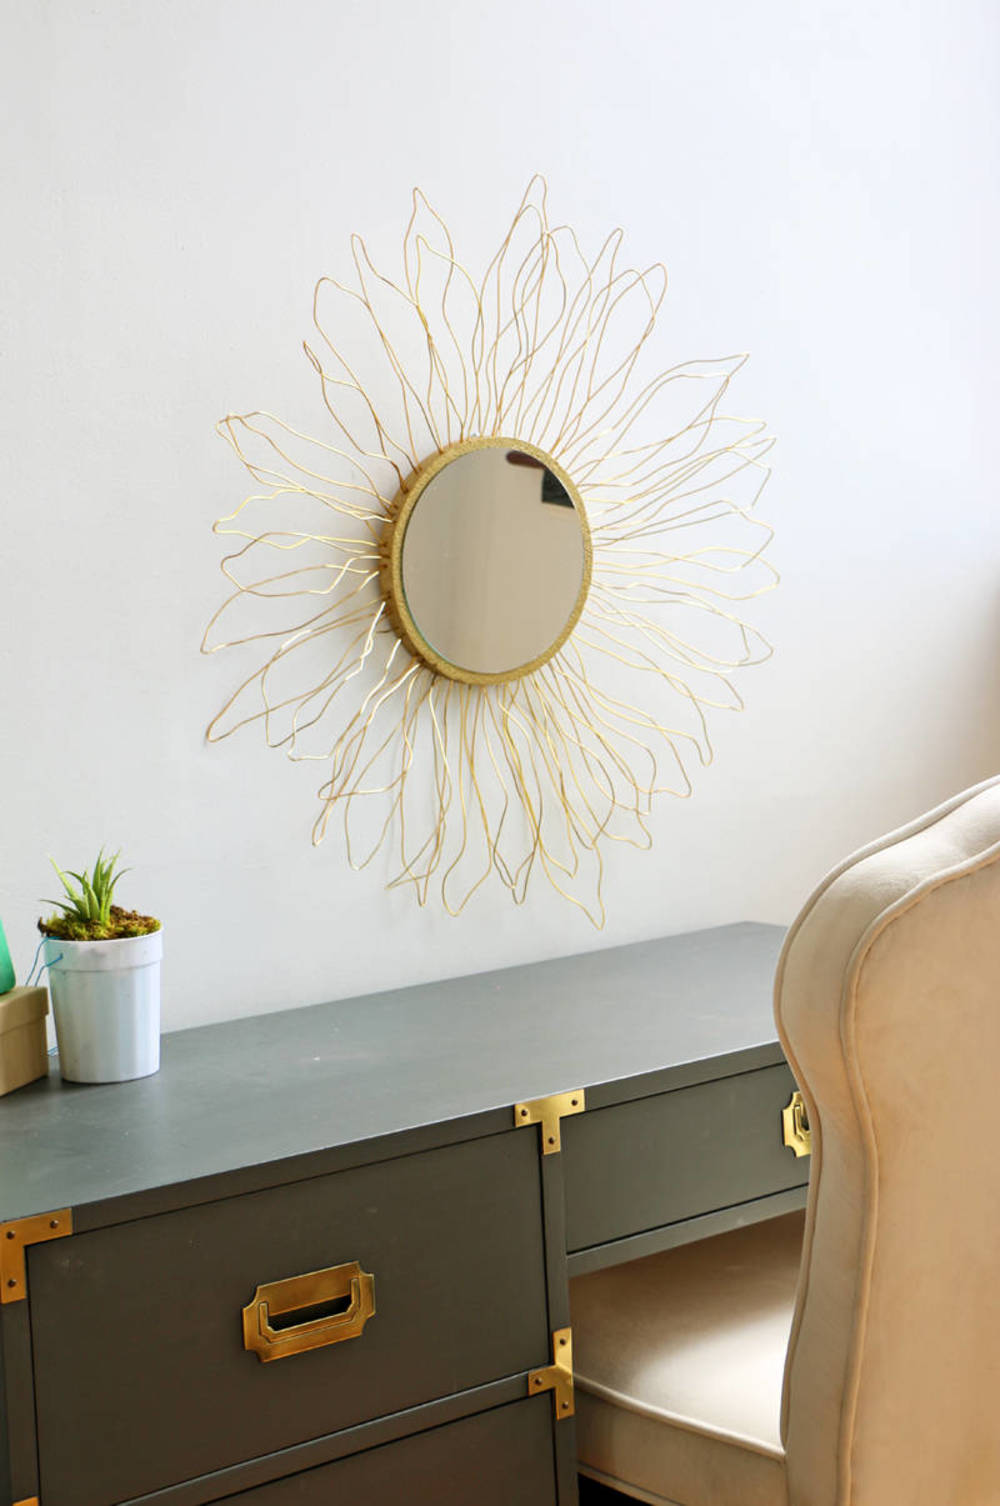 This starburst mirror is such a lovely contemporary design that looks great in any room for a little added flare